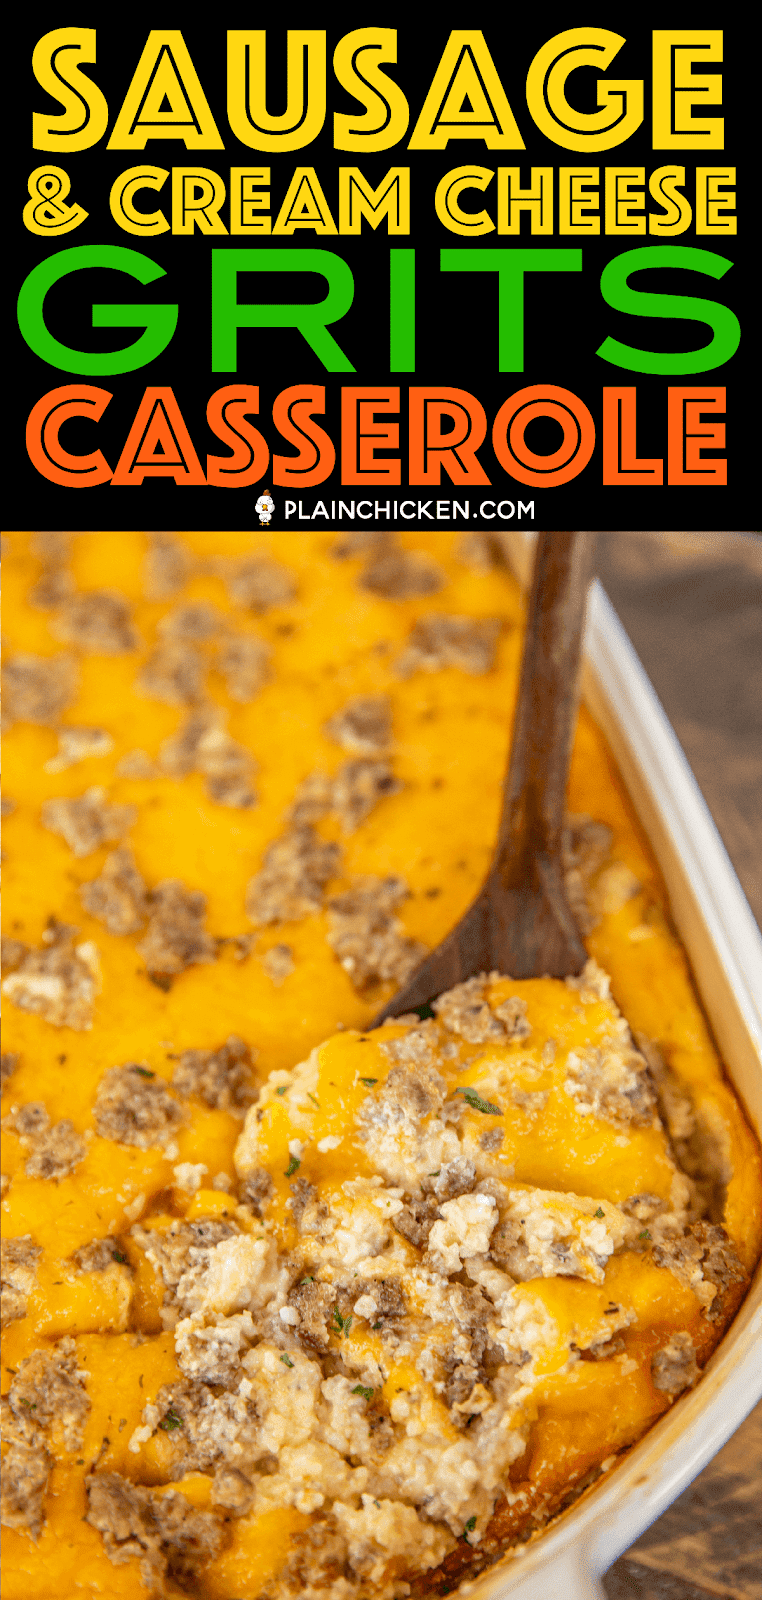 Sausage & Cream Cheese Grits Casserole - seriously delicious!! Can make ahead of time and freezer for a quick meal later! Sausage, cream cheese, grits, chicken broth, Velveeta, cheddar cheese, eggs, butter and milk. Took this to a potluck and it was gone in a flash. Everyone asked for the recipe! Great for breakfast, brunch, lunch or dinner. #casserole #freezermeal #sausage #breakfast